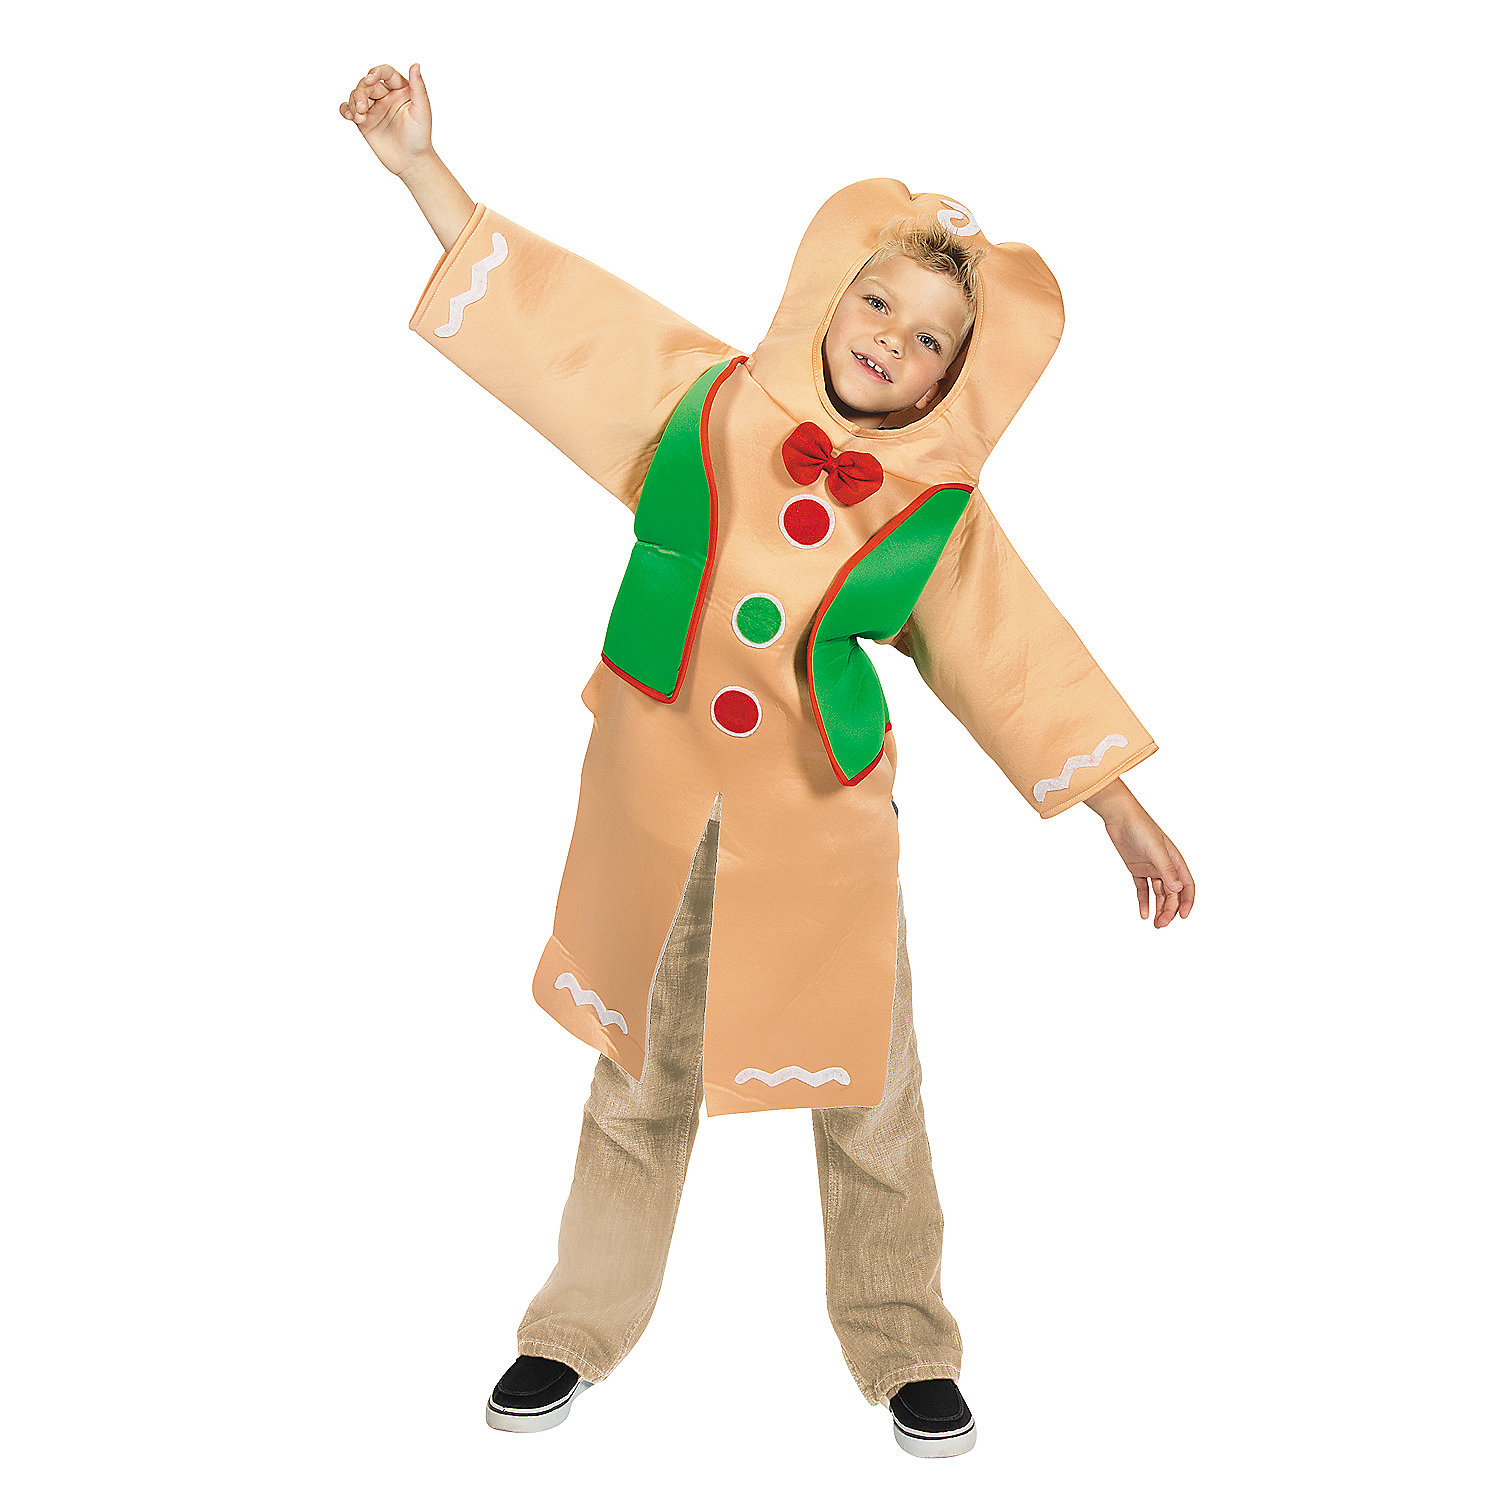 Gingerbread costume in 4 5348 gingerbread costume slip it on over your